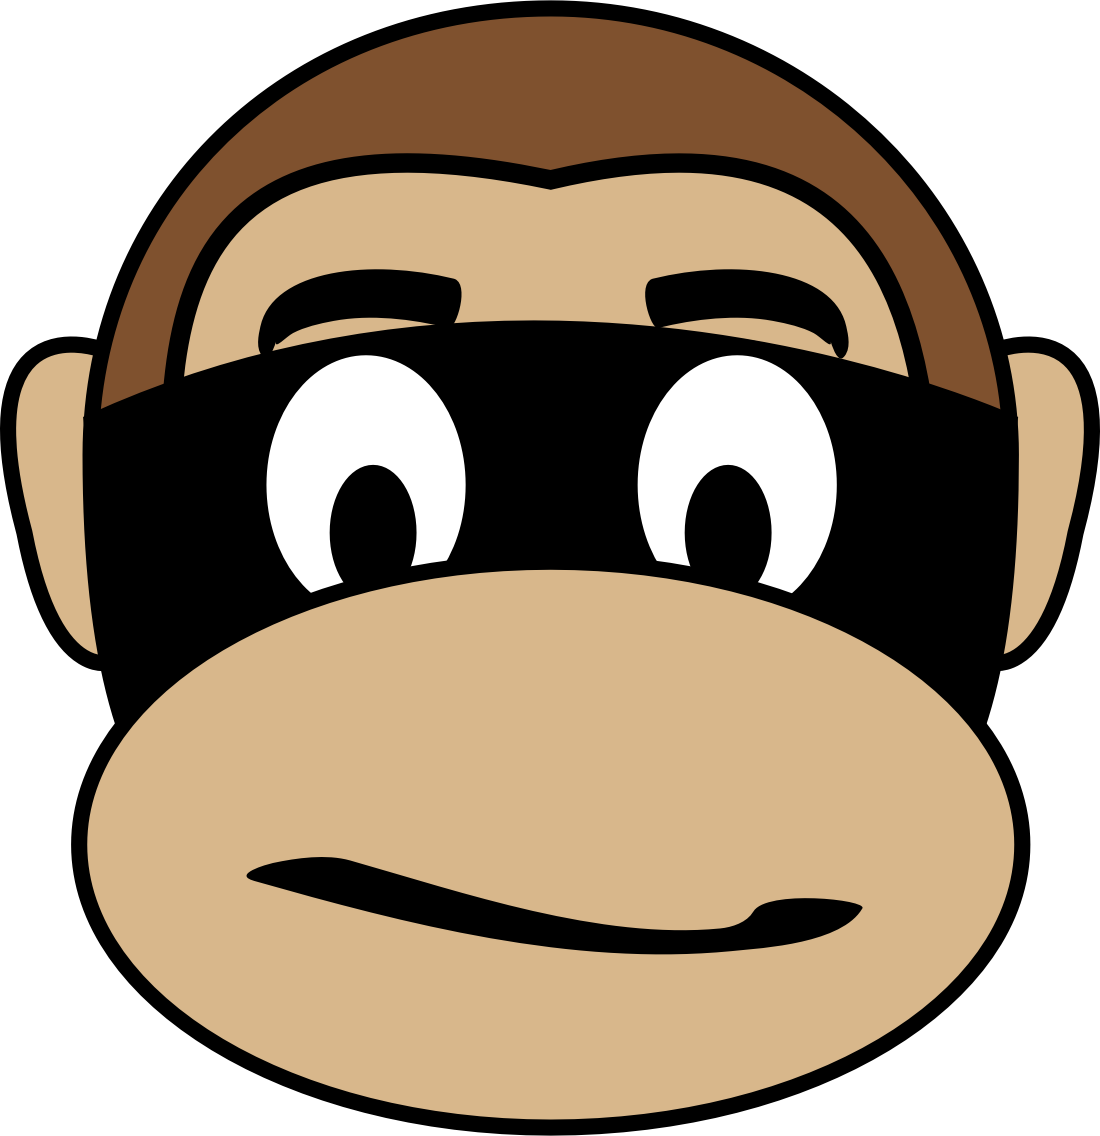 Monkey emoji big image. Criminal clipart cartoon